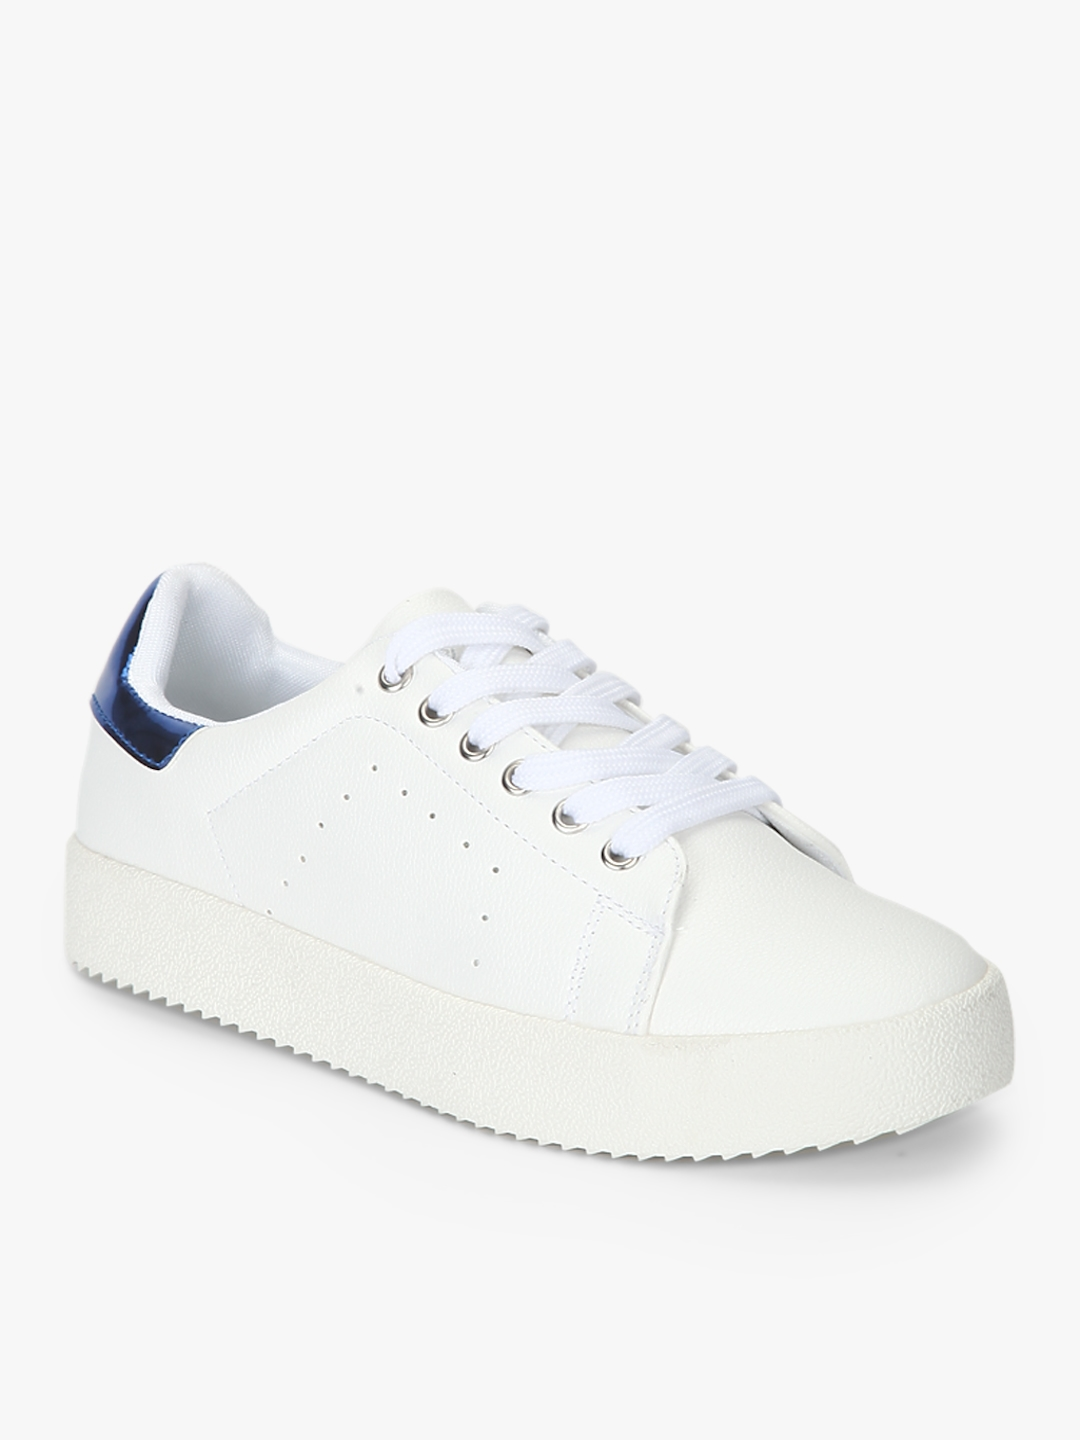 Buy Lee Cooper Women White Lace Up